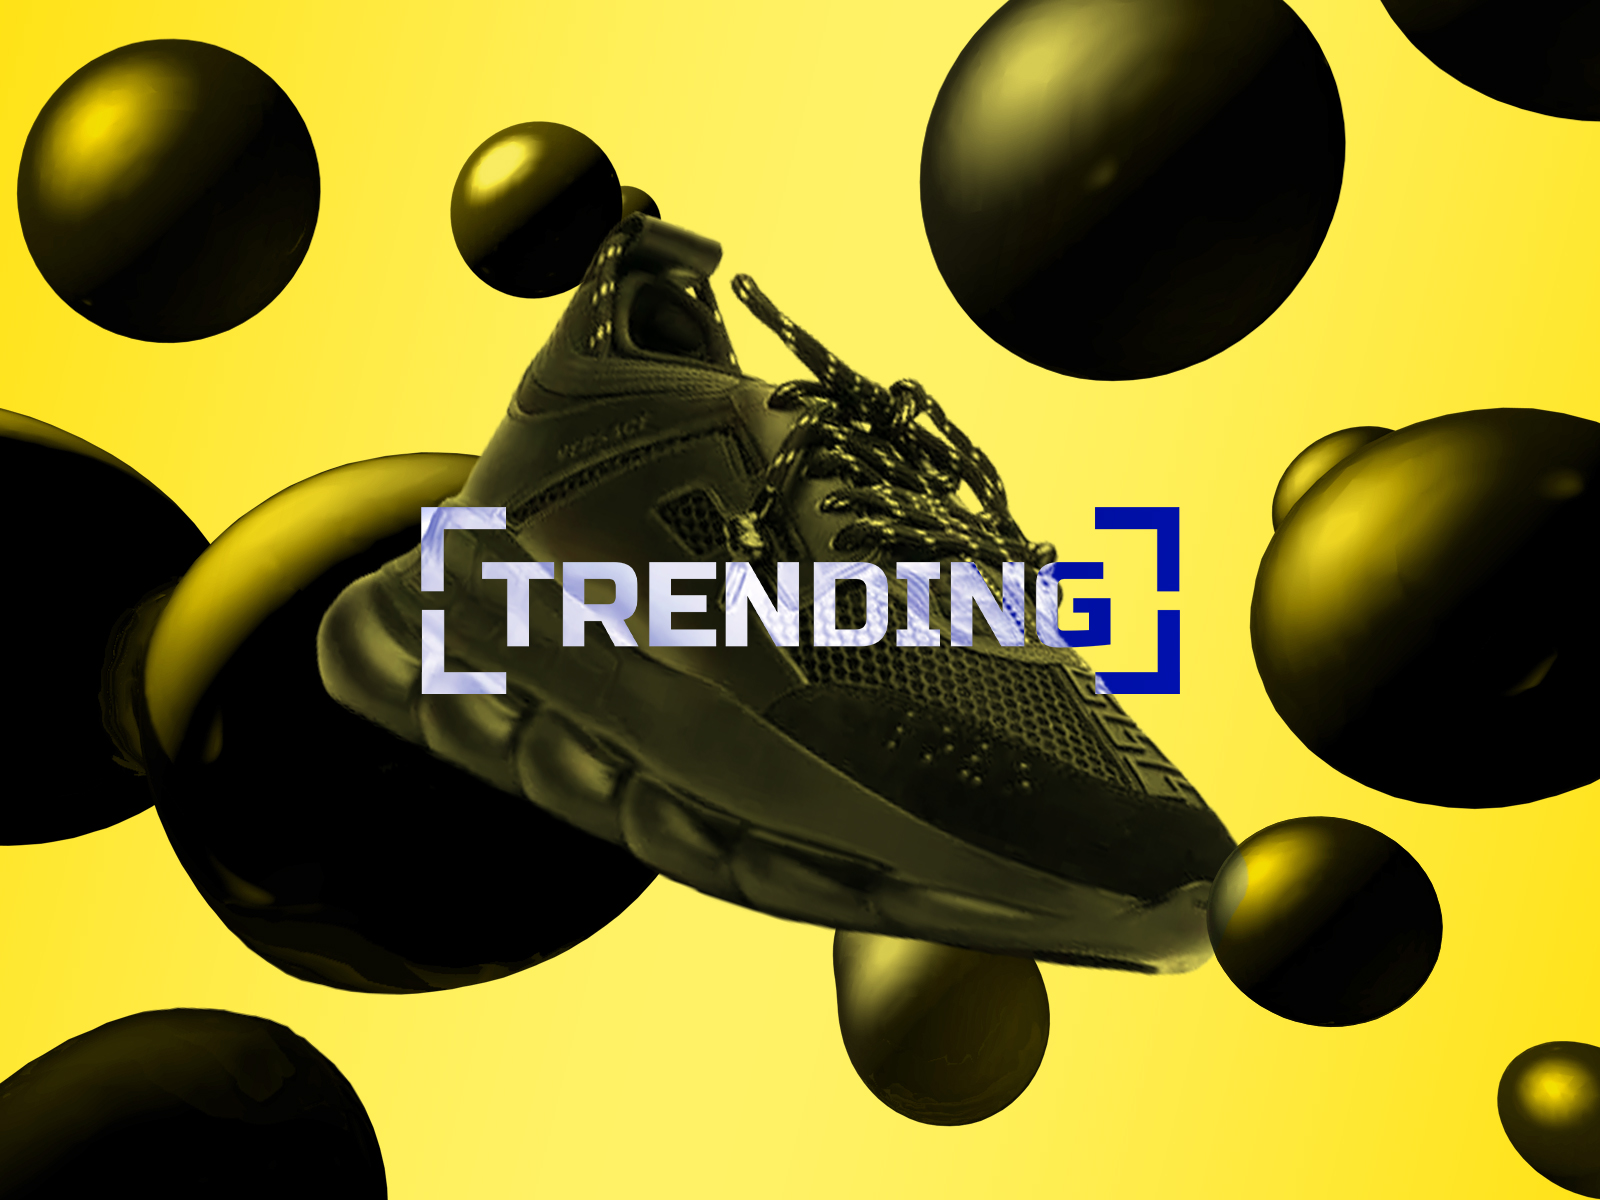 Music Fashion Trends | Fashion Trends 2020 | Post Kulture Trending mysnapp